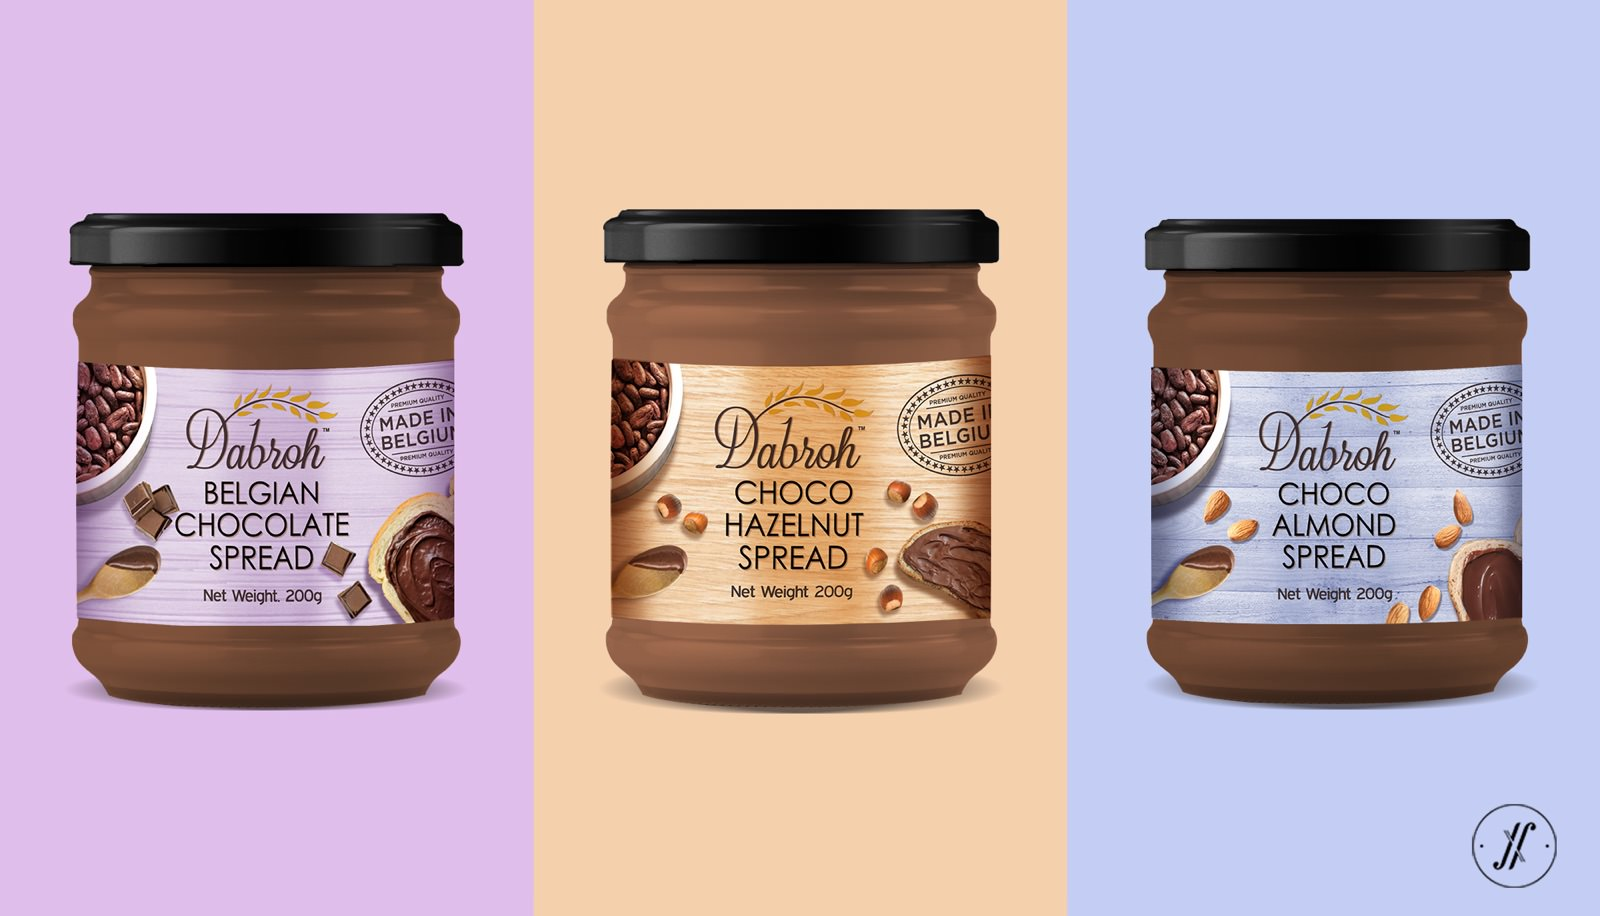 Dabroh-packaging-design-yellow-fishes-branding-agency-Consultancy-design-agency-mumbai-Chocolate-Spreads-best-packaging-design